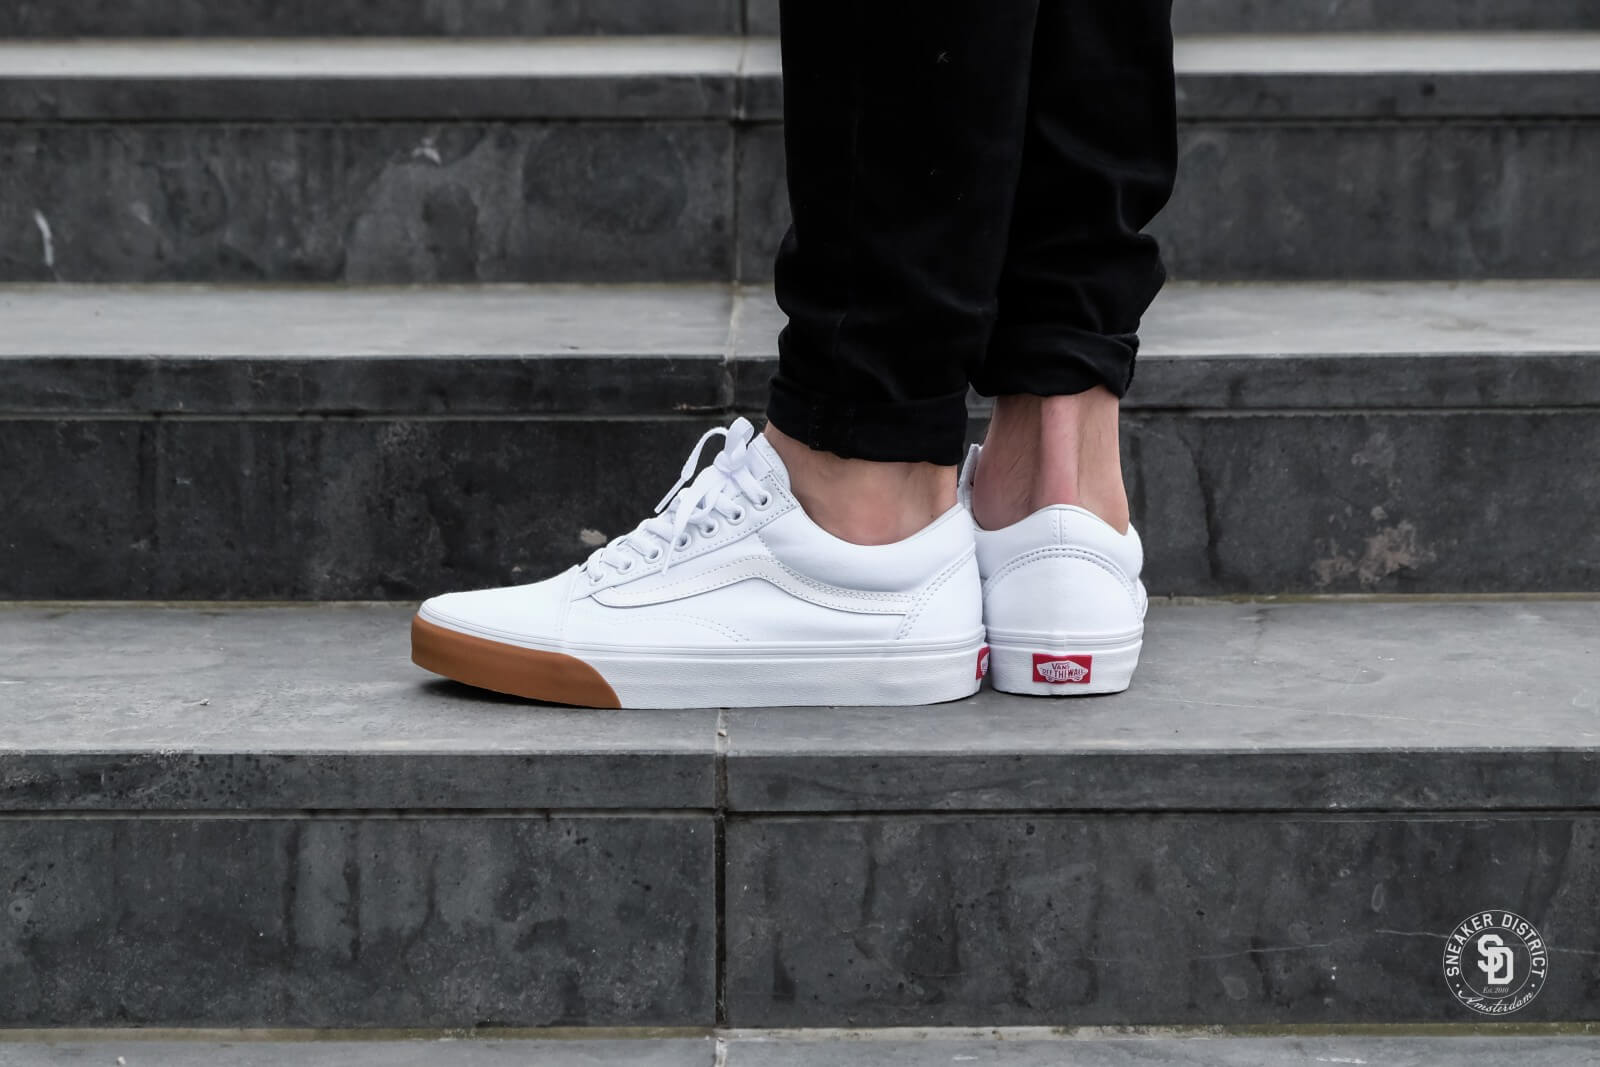 vans old skool gum bumper